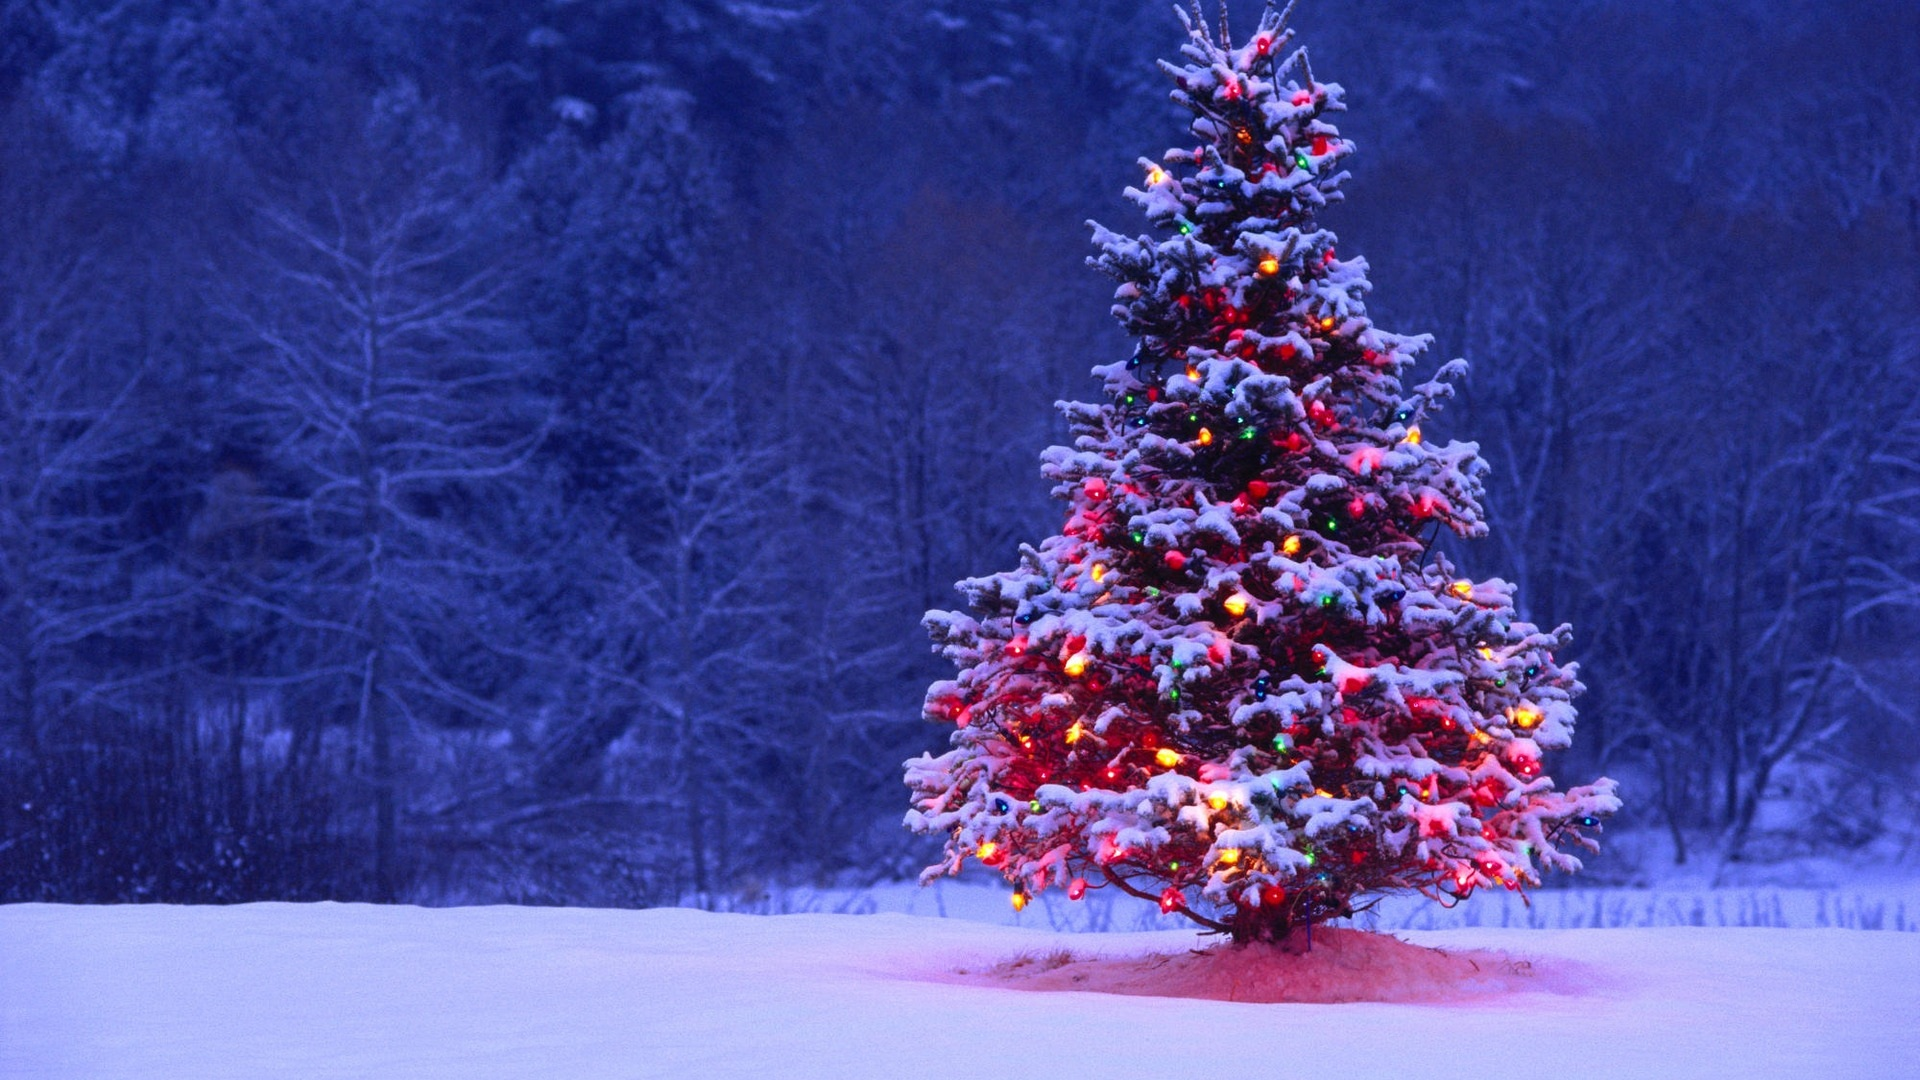 Images Of Christmas Tree with Snow and Lights 1577.79 Kb